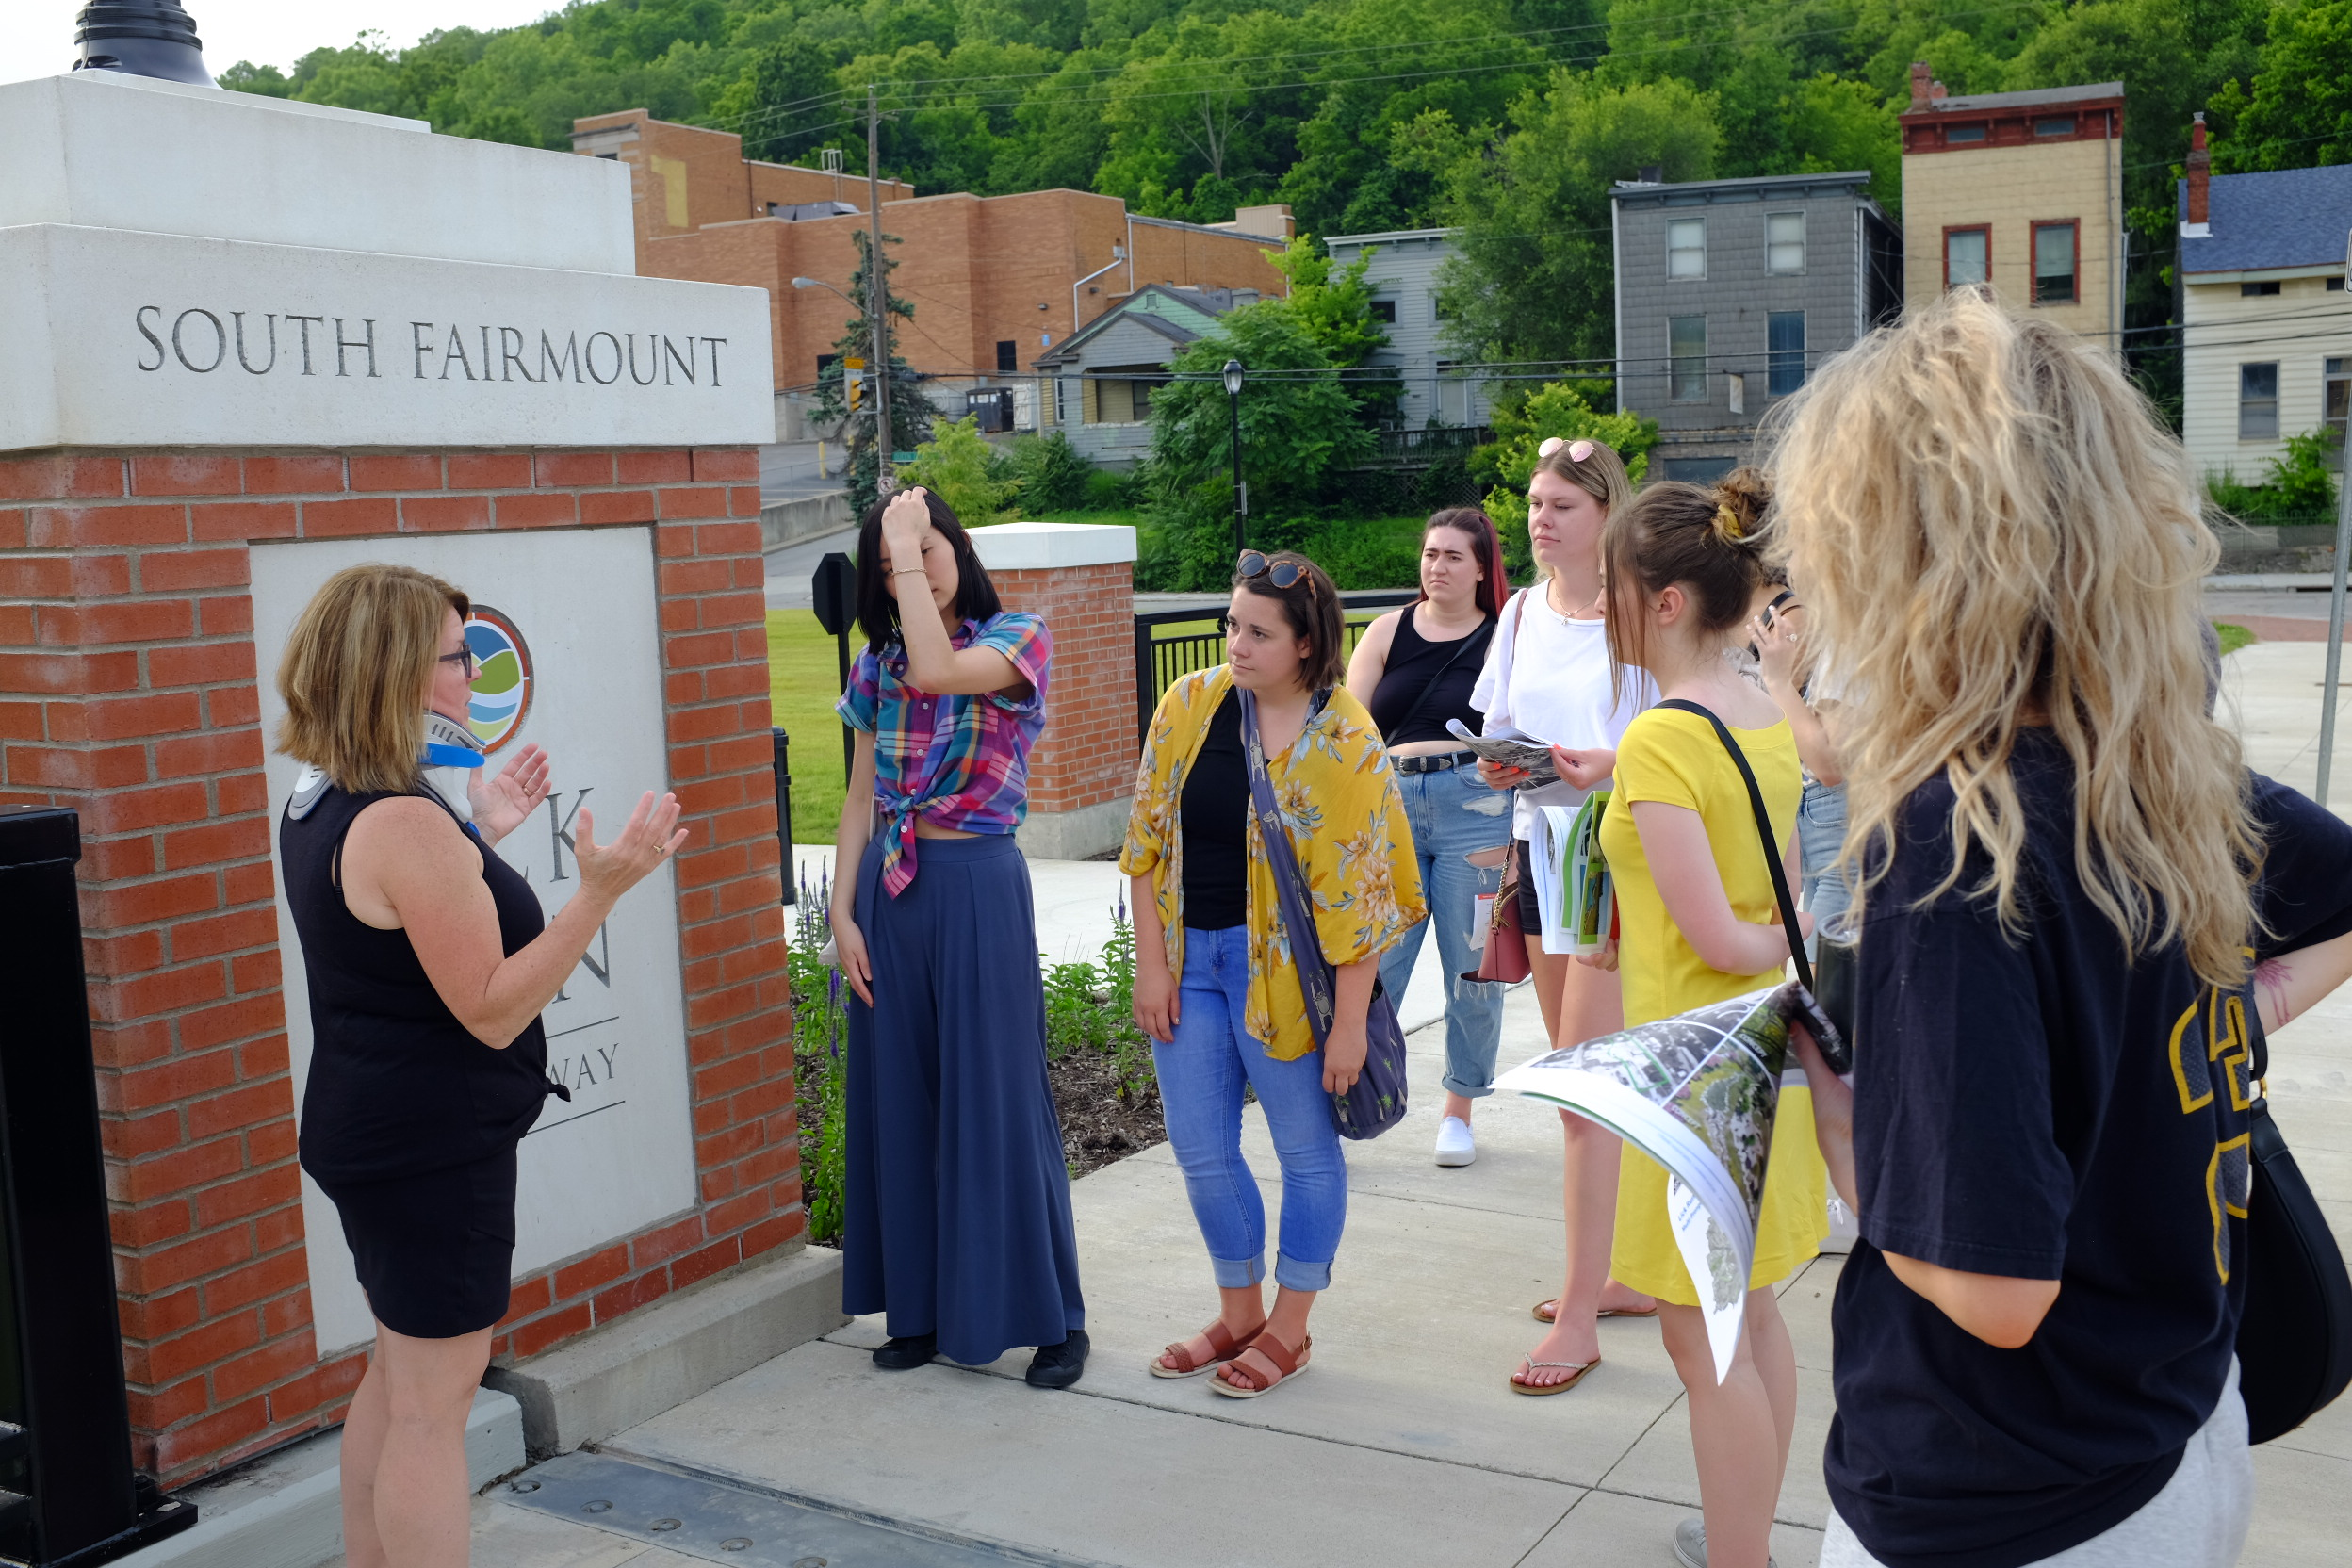 Tour group viewing a gateway feature.